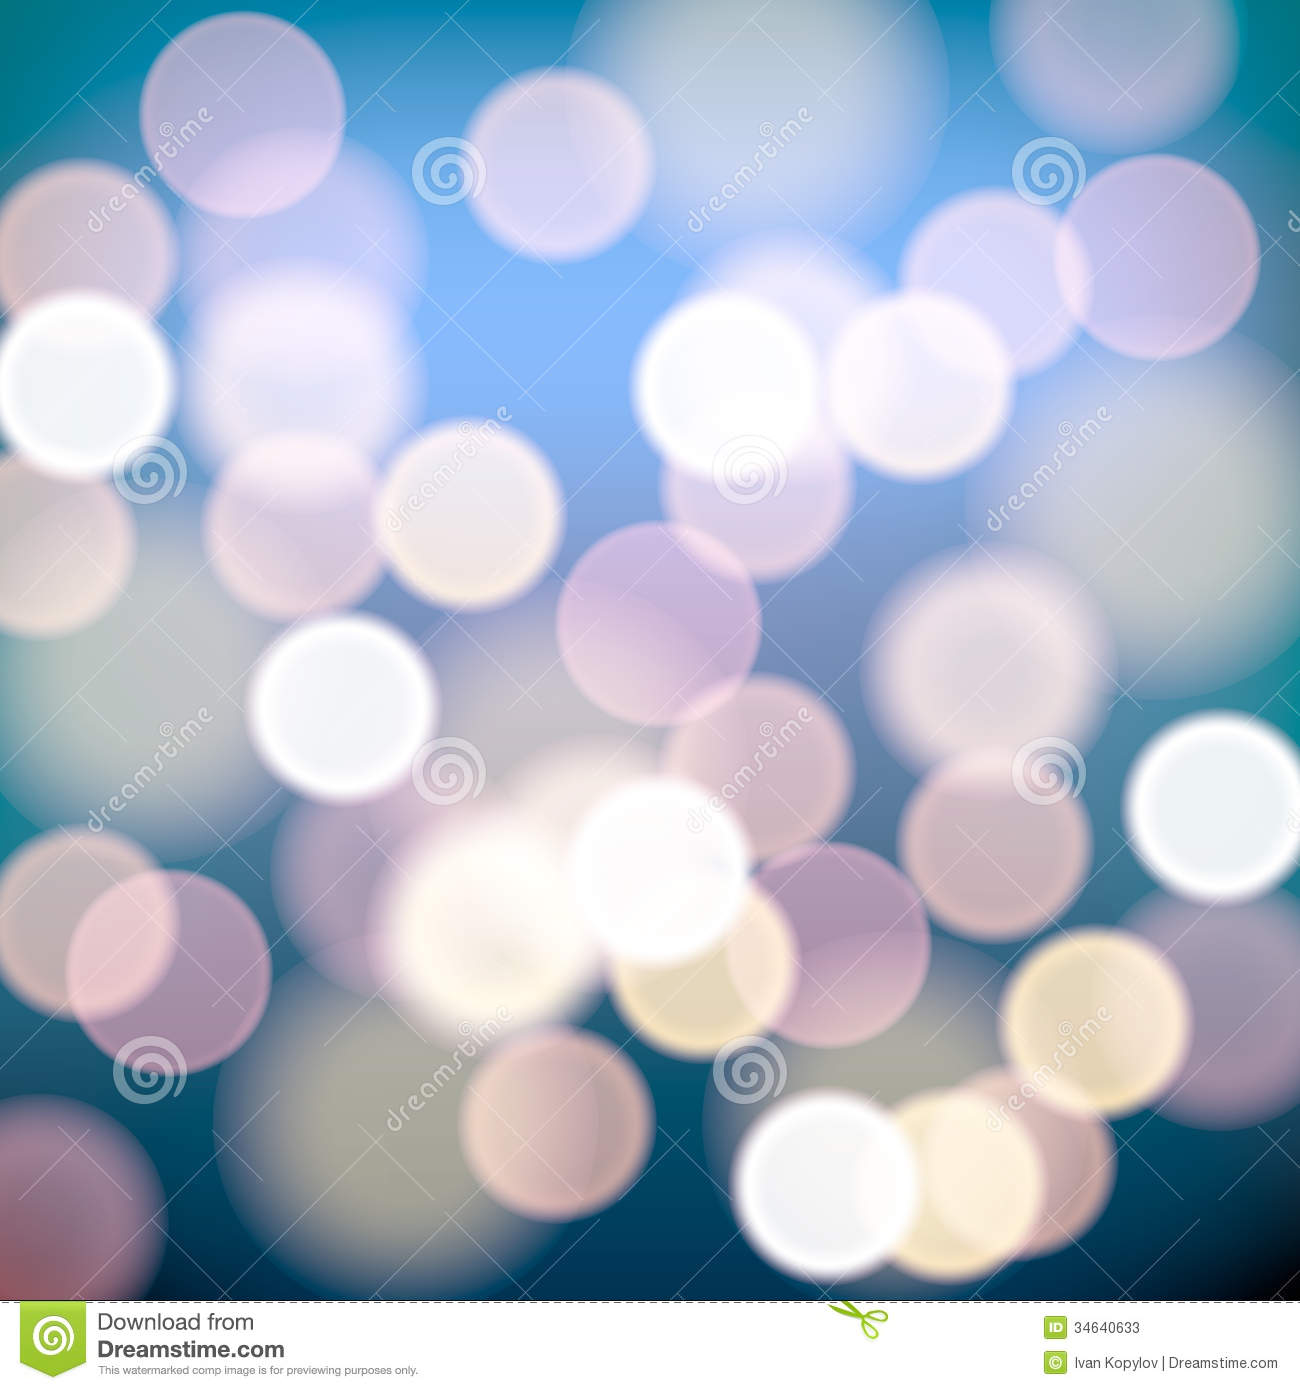 Christmas Lights Blurred Background Stock Photos - Image: 34640633